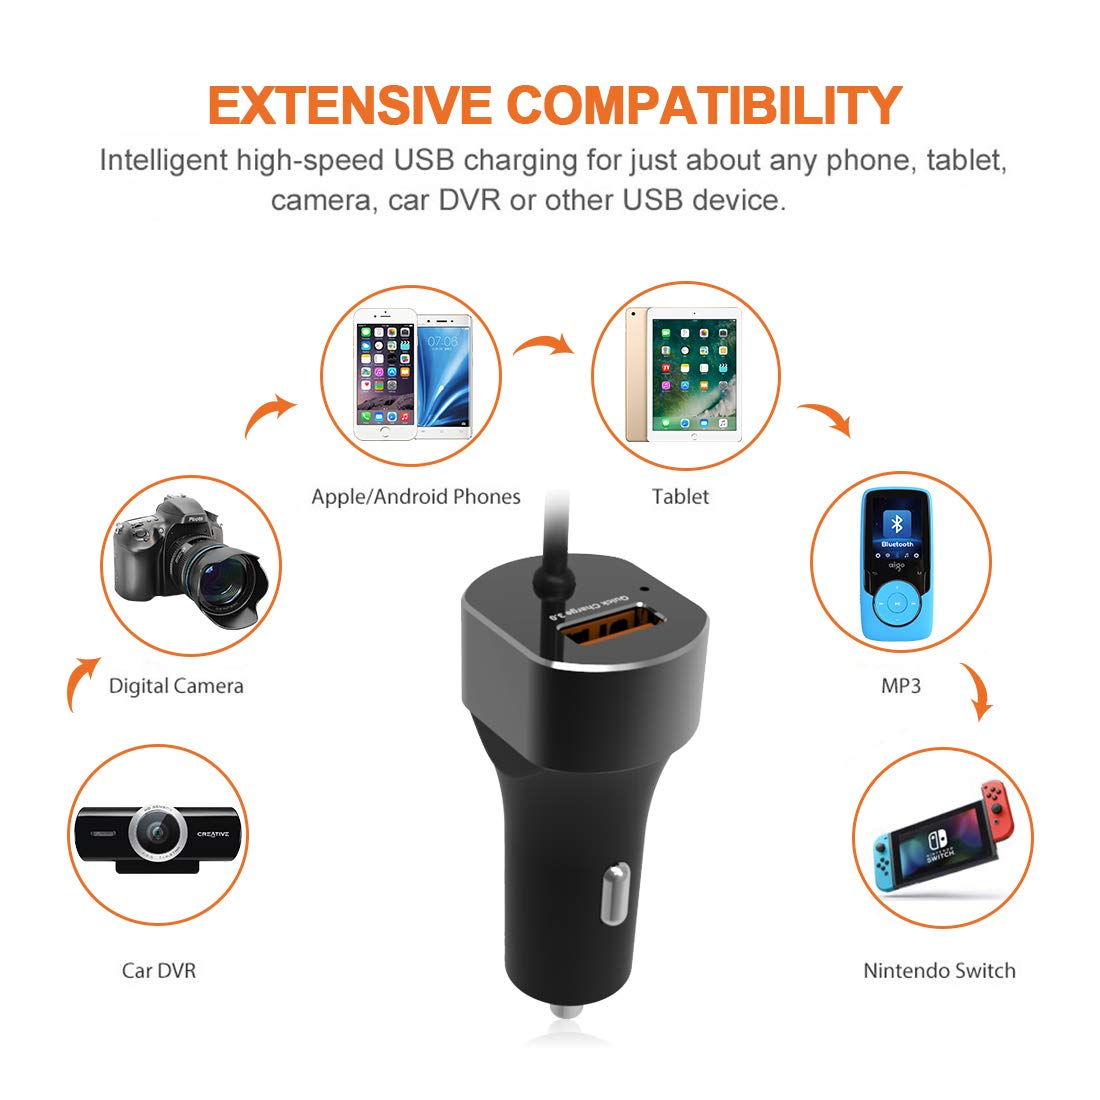 Rapid iPhone Car Charger 24W//4.8A iPhone Car Charger Adapter with Coiled Cord Compatible iPhone Xs MAX XR X 8 8Plus iPad Samsung Kindle Tablet,with Extra USB Port HUNDA